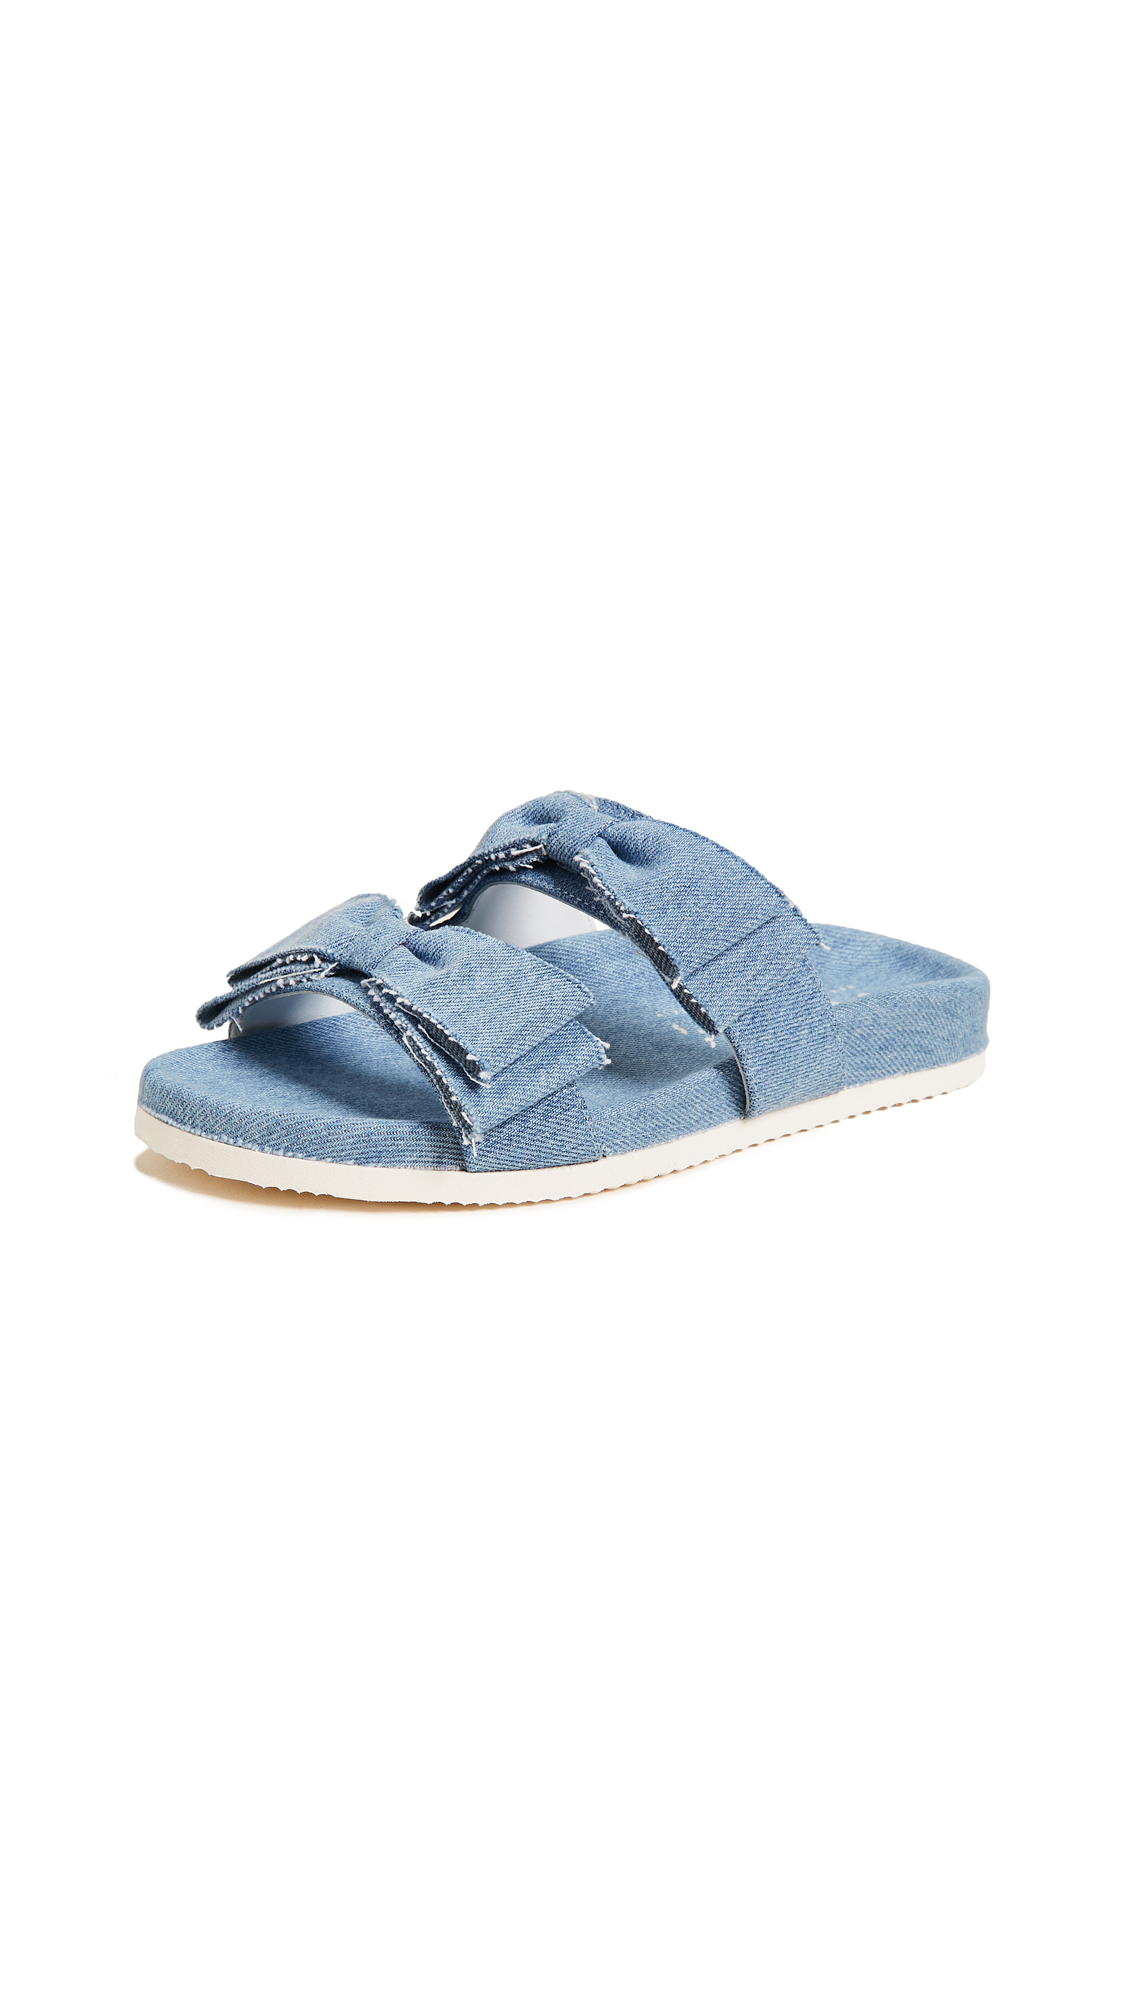 Joshua Sanders Knot Slides - Light Denim